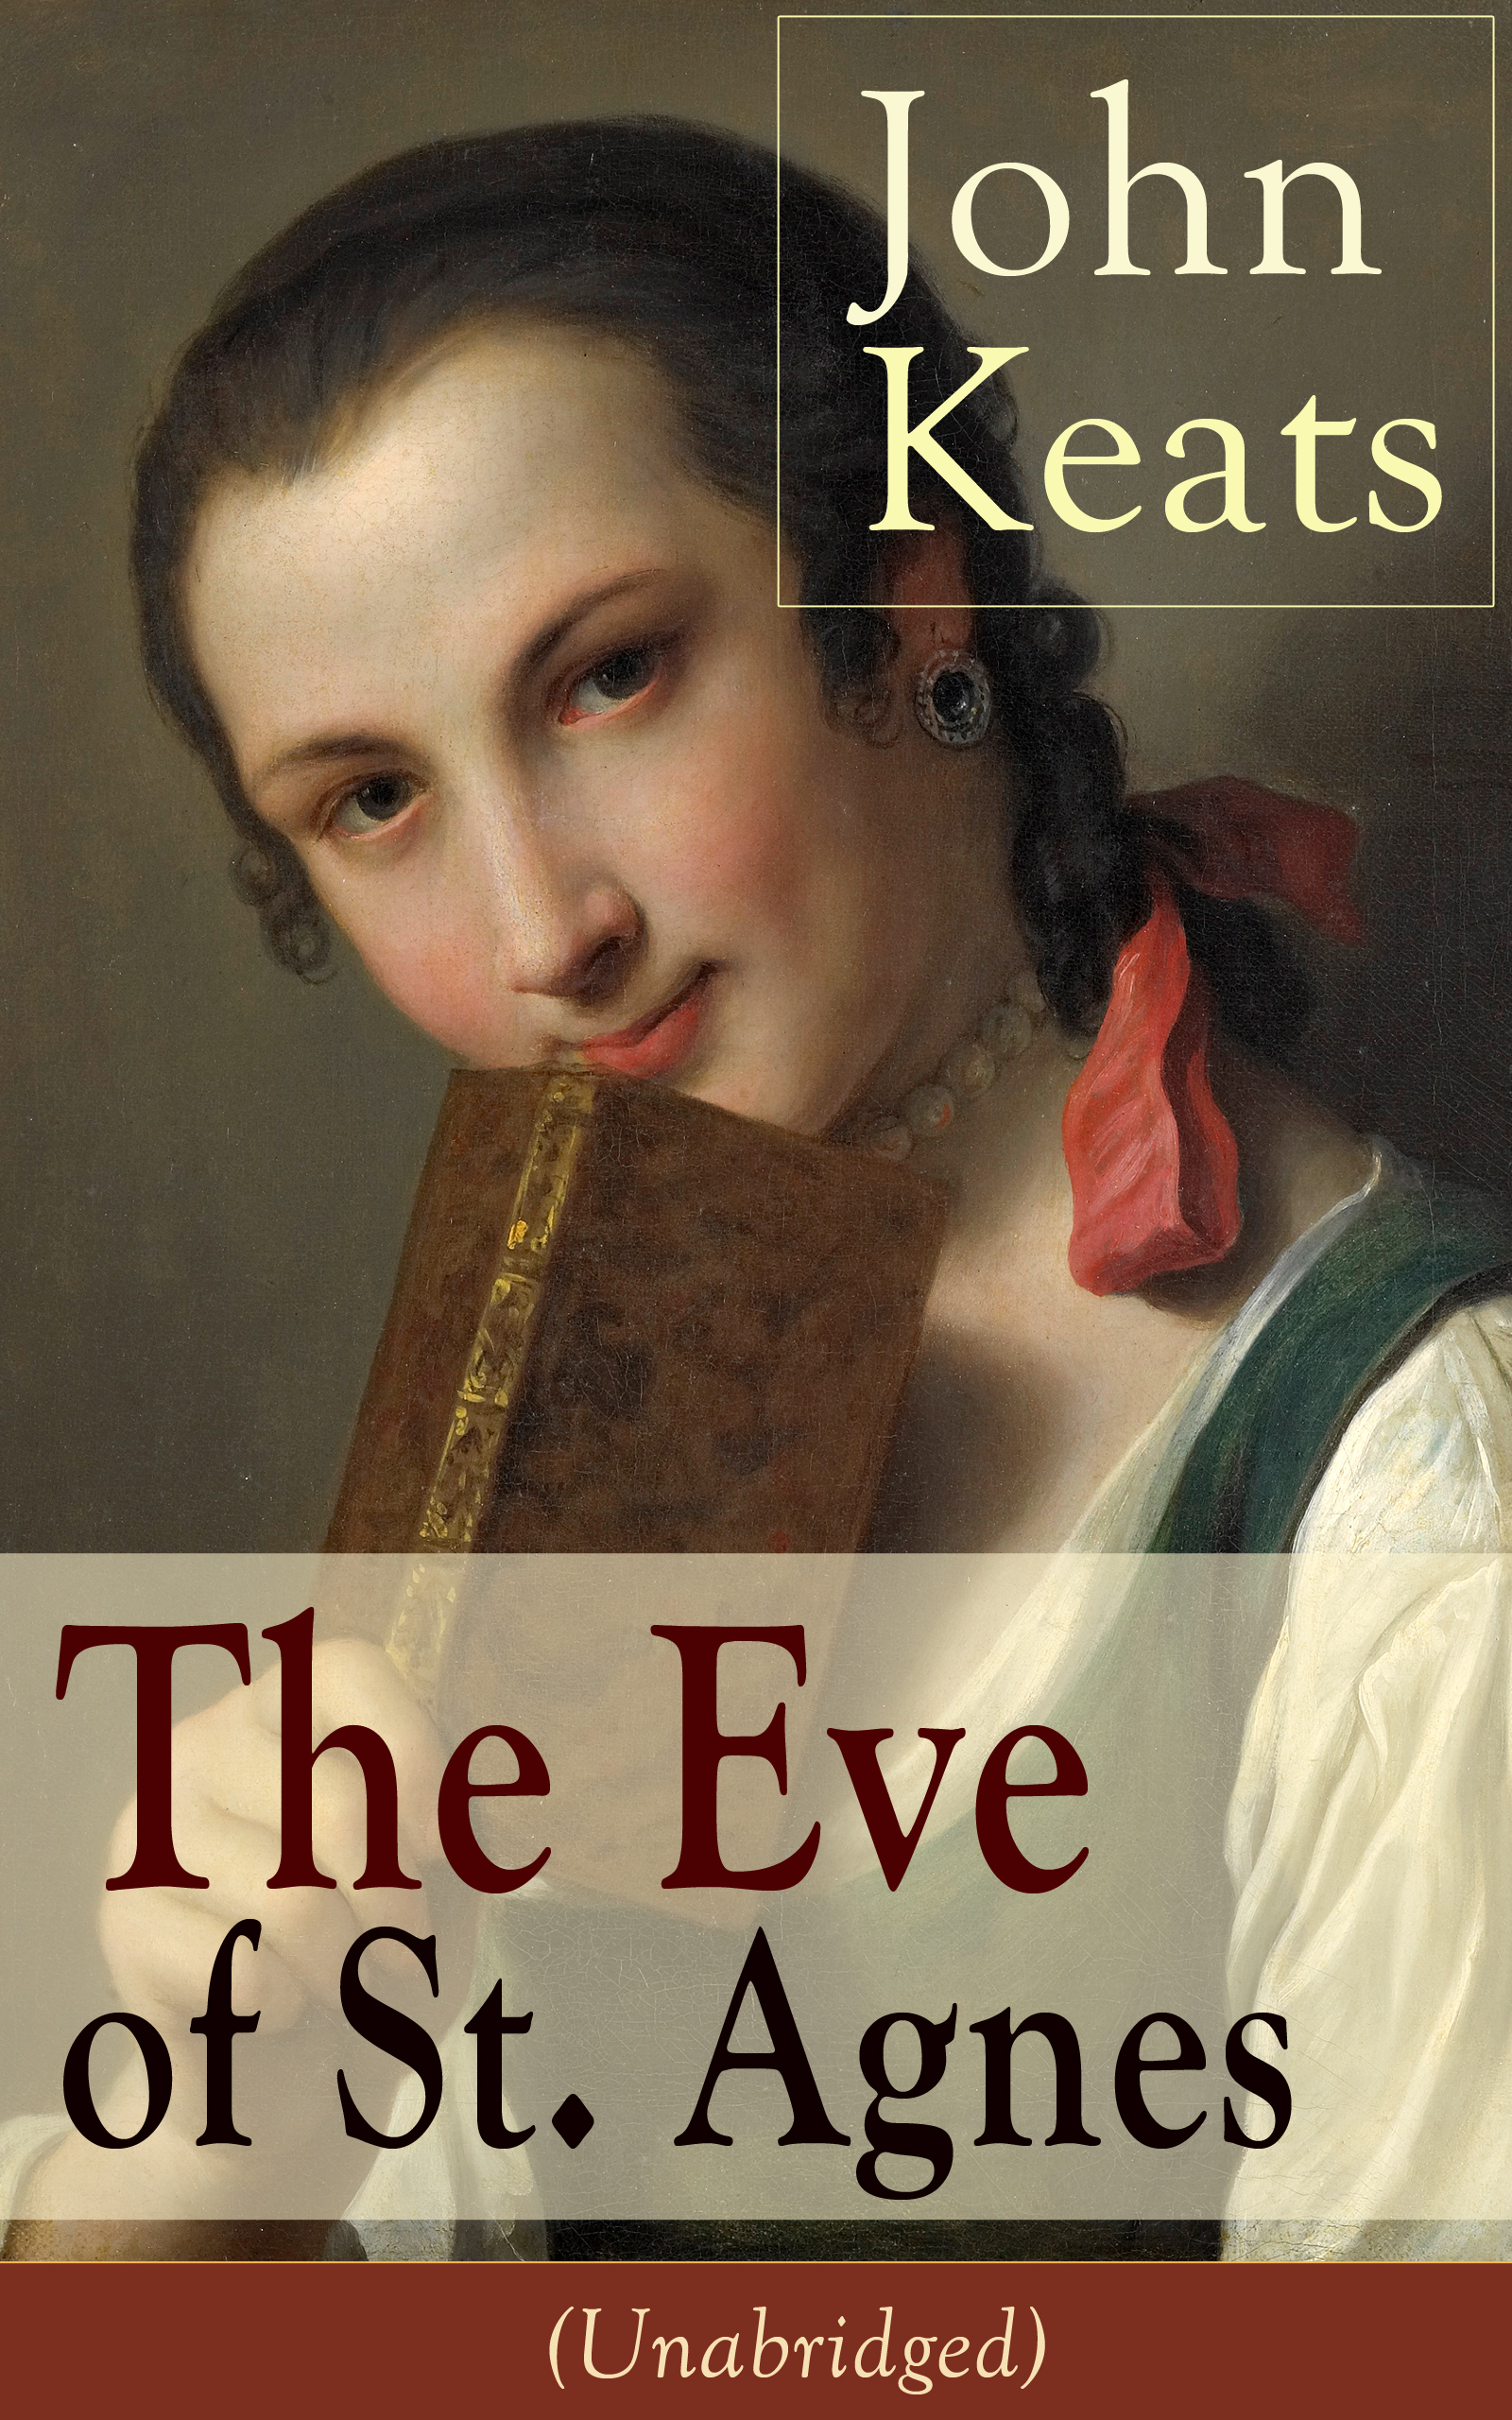 John Keats John Keats: The Eve of St. Agnes (Unabridged) complete poems and selected letters of john keats